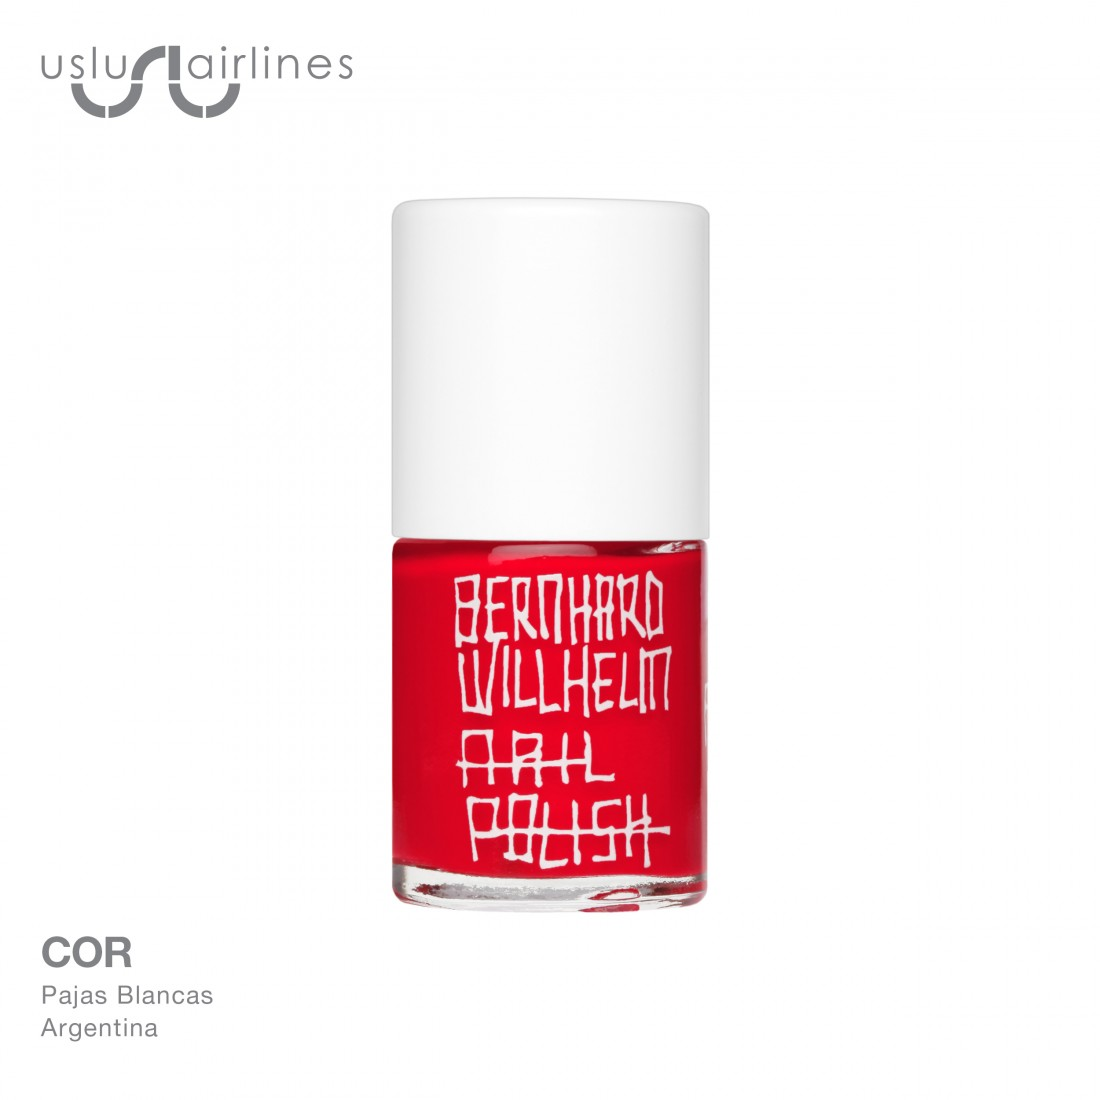 uslu_nailpolish_COR